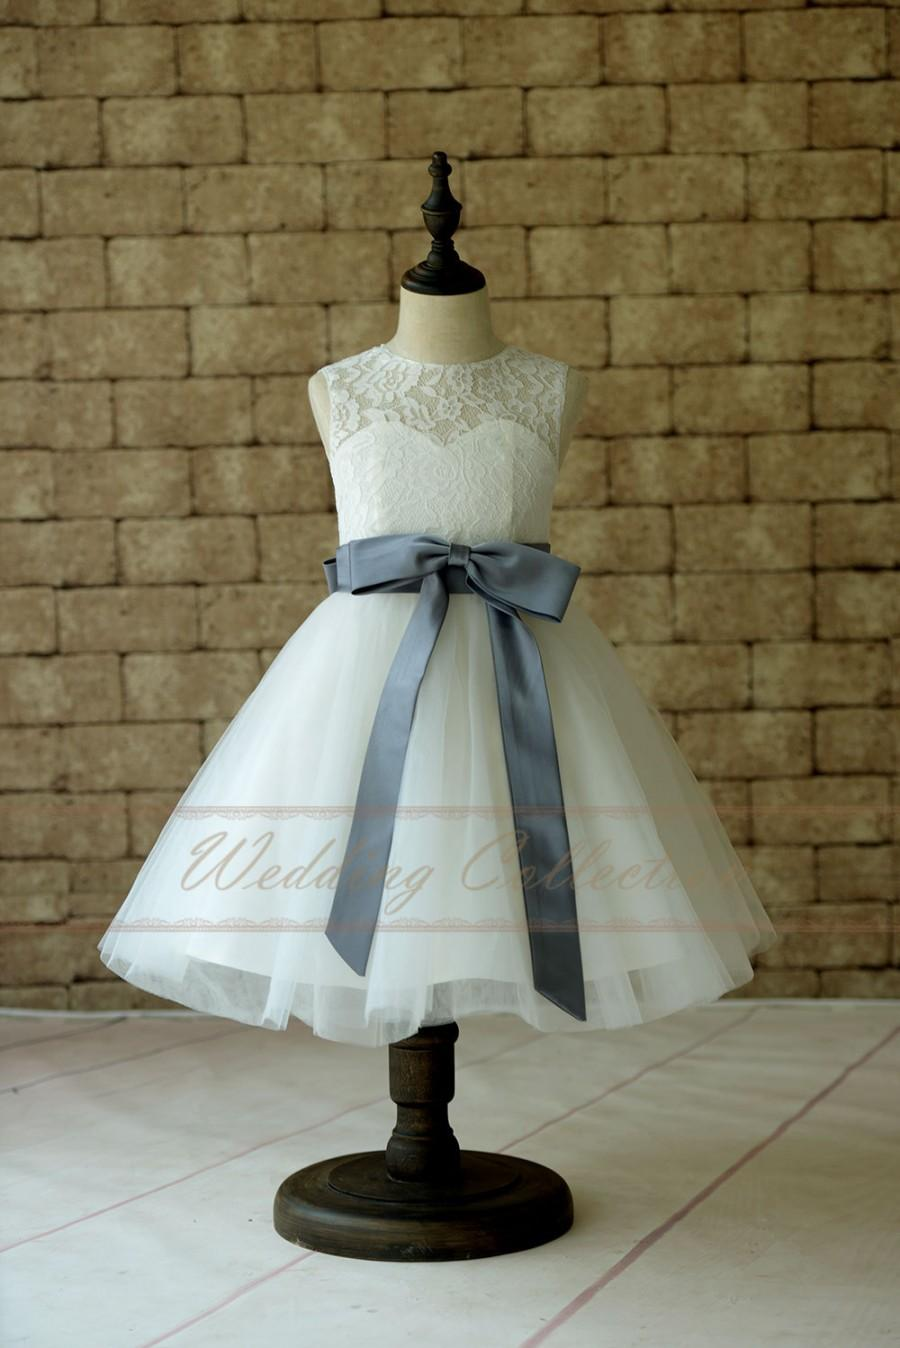 زفاف - Ivory Lace Tulle Flower Girl Dress With Gray Sash and Bow